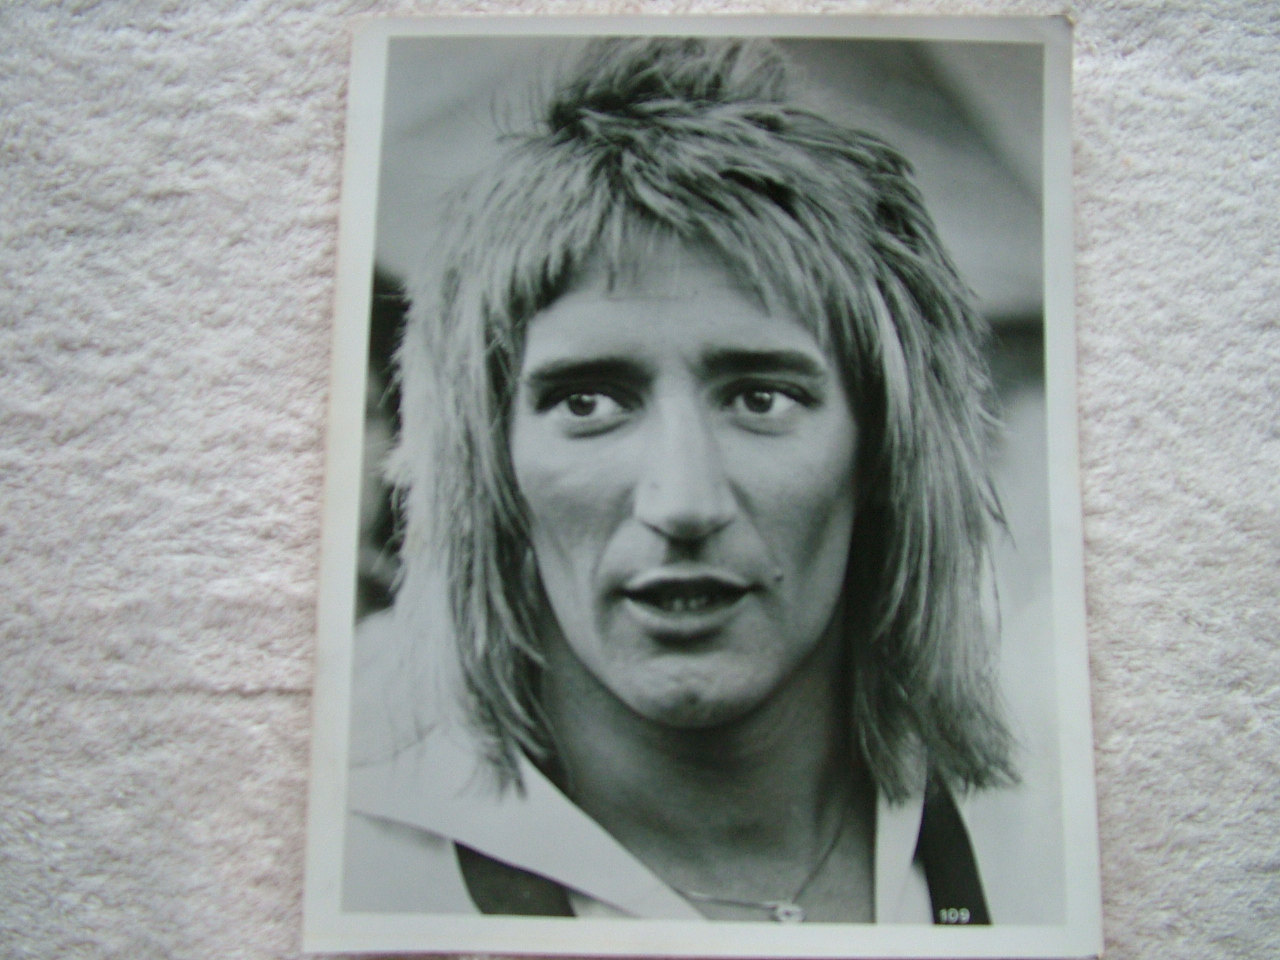 ... Rod Steward Photograph 1970's.